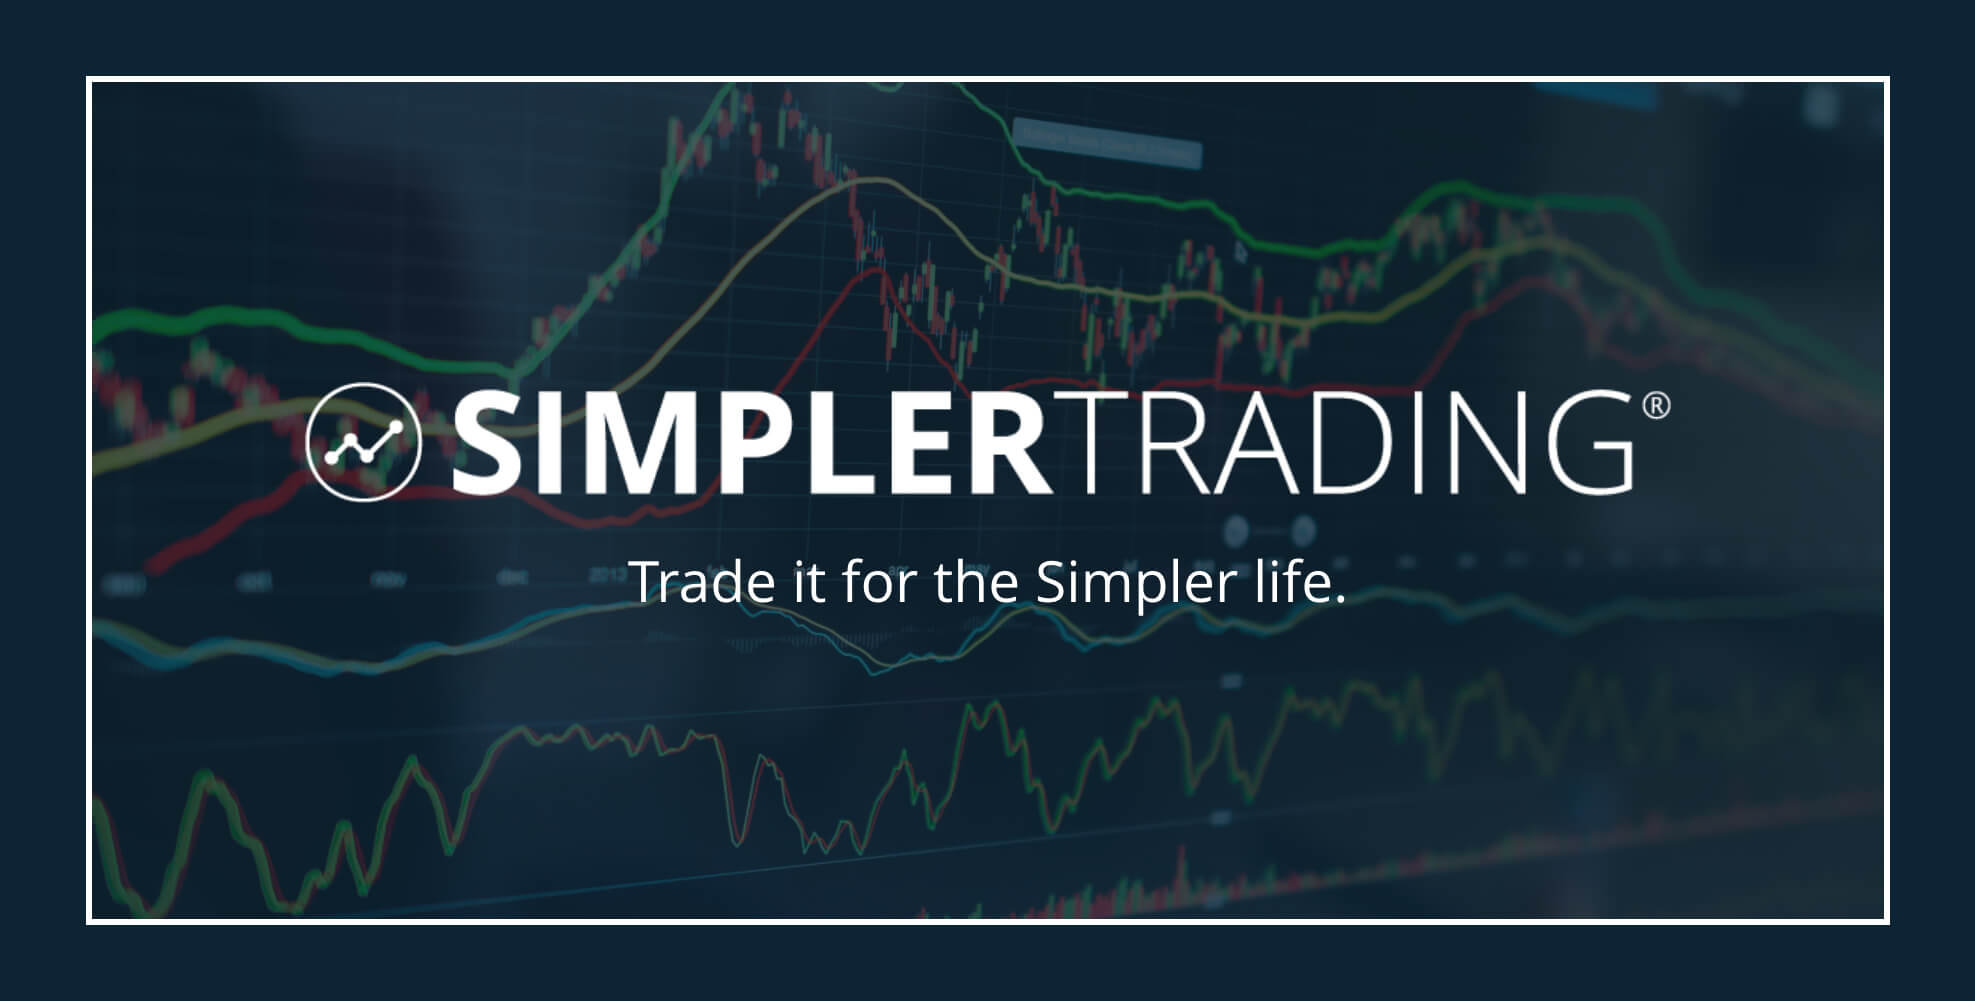 Simpler Trading